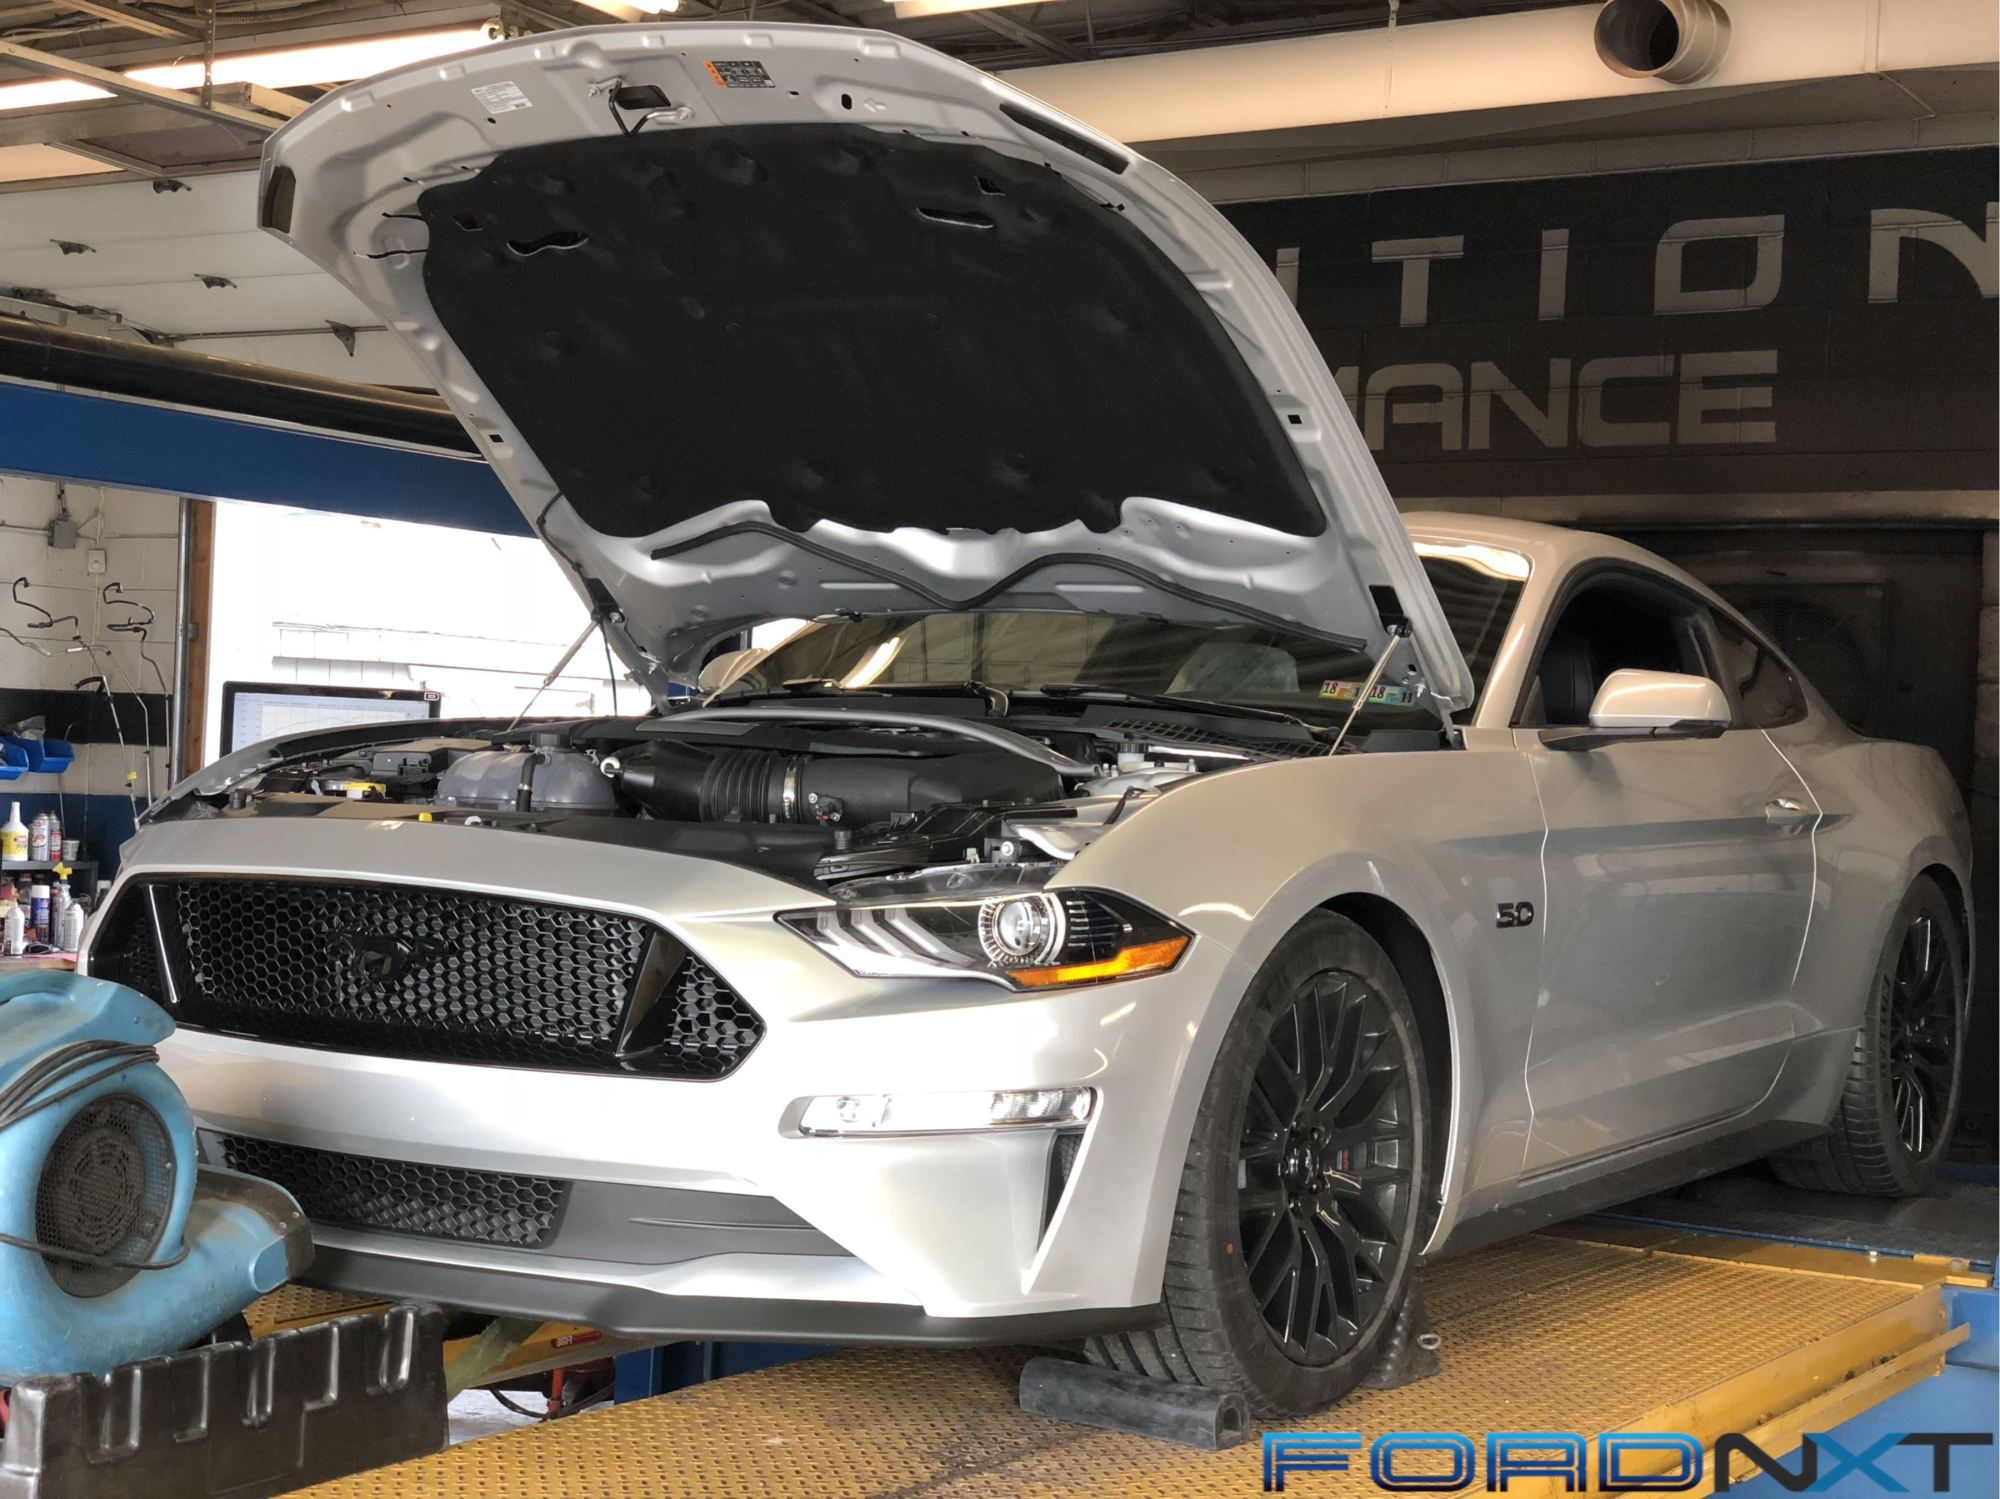 hight resolution of evolution performance s fred cook wasted no time modding his brand new 2018 mustang gt auto with a carefully chosen selection of bolt ons from jlt